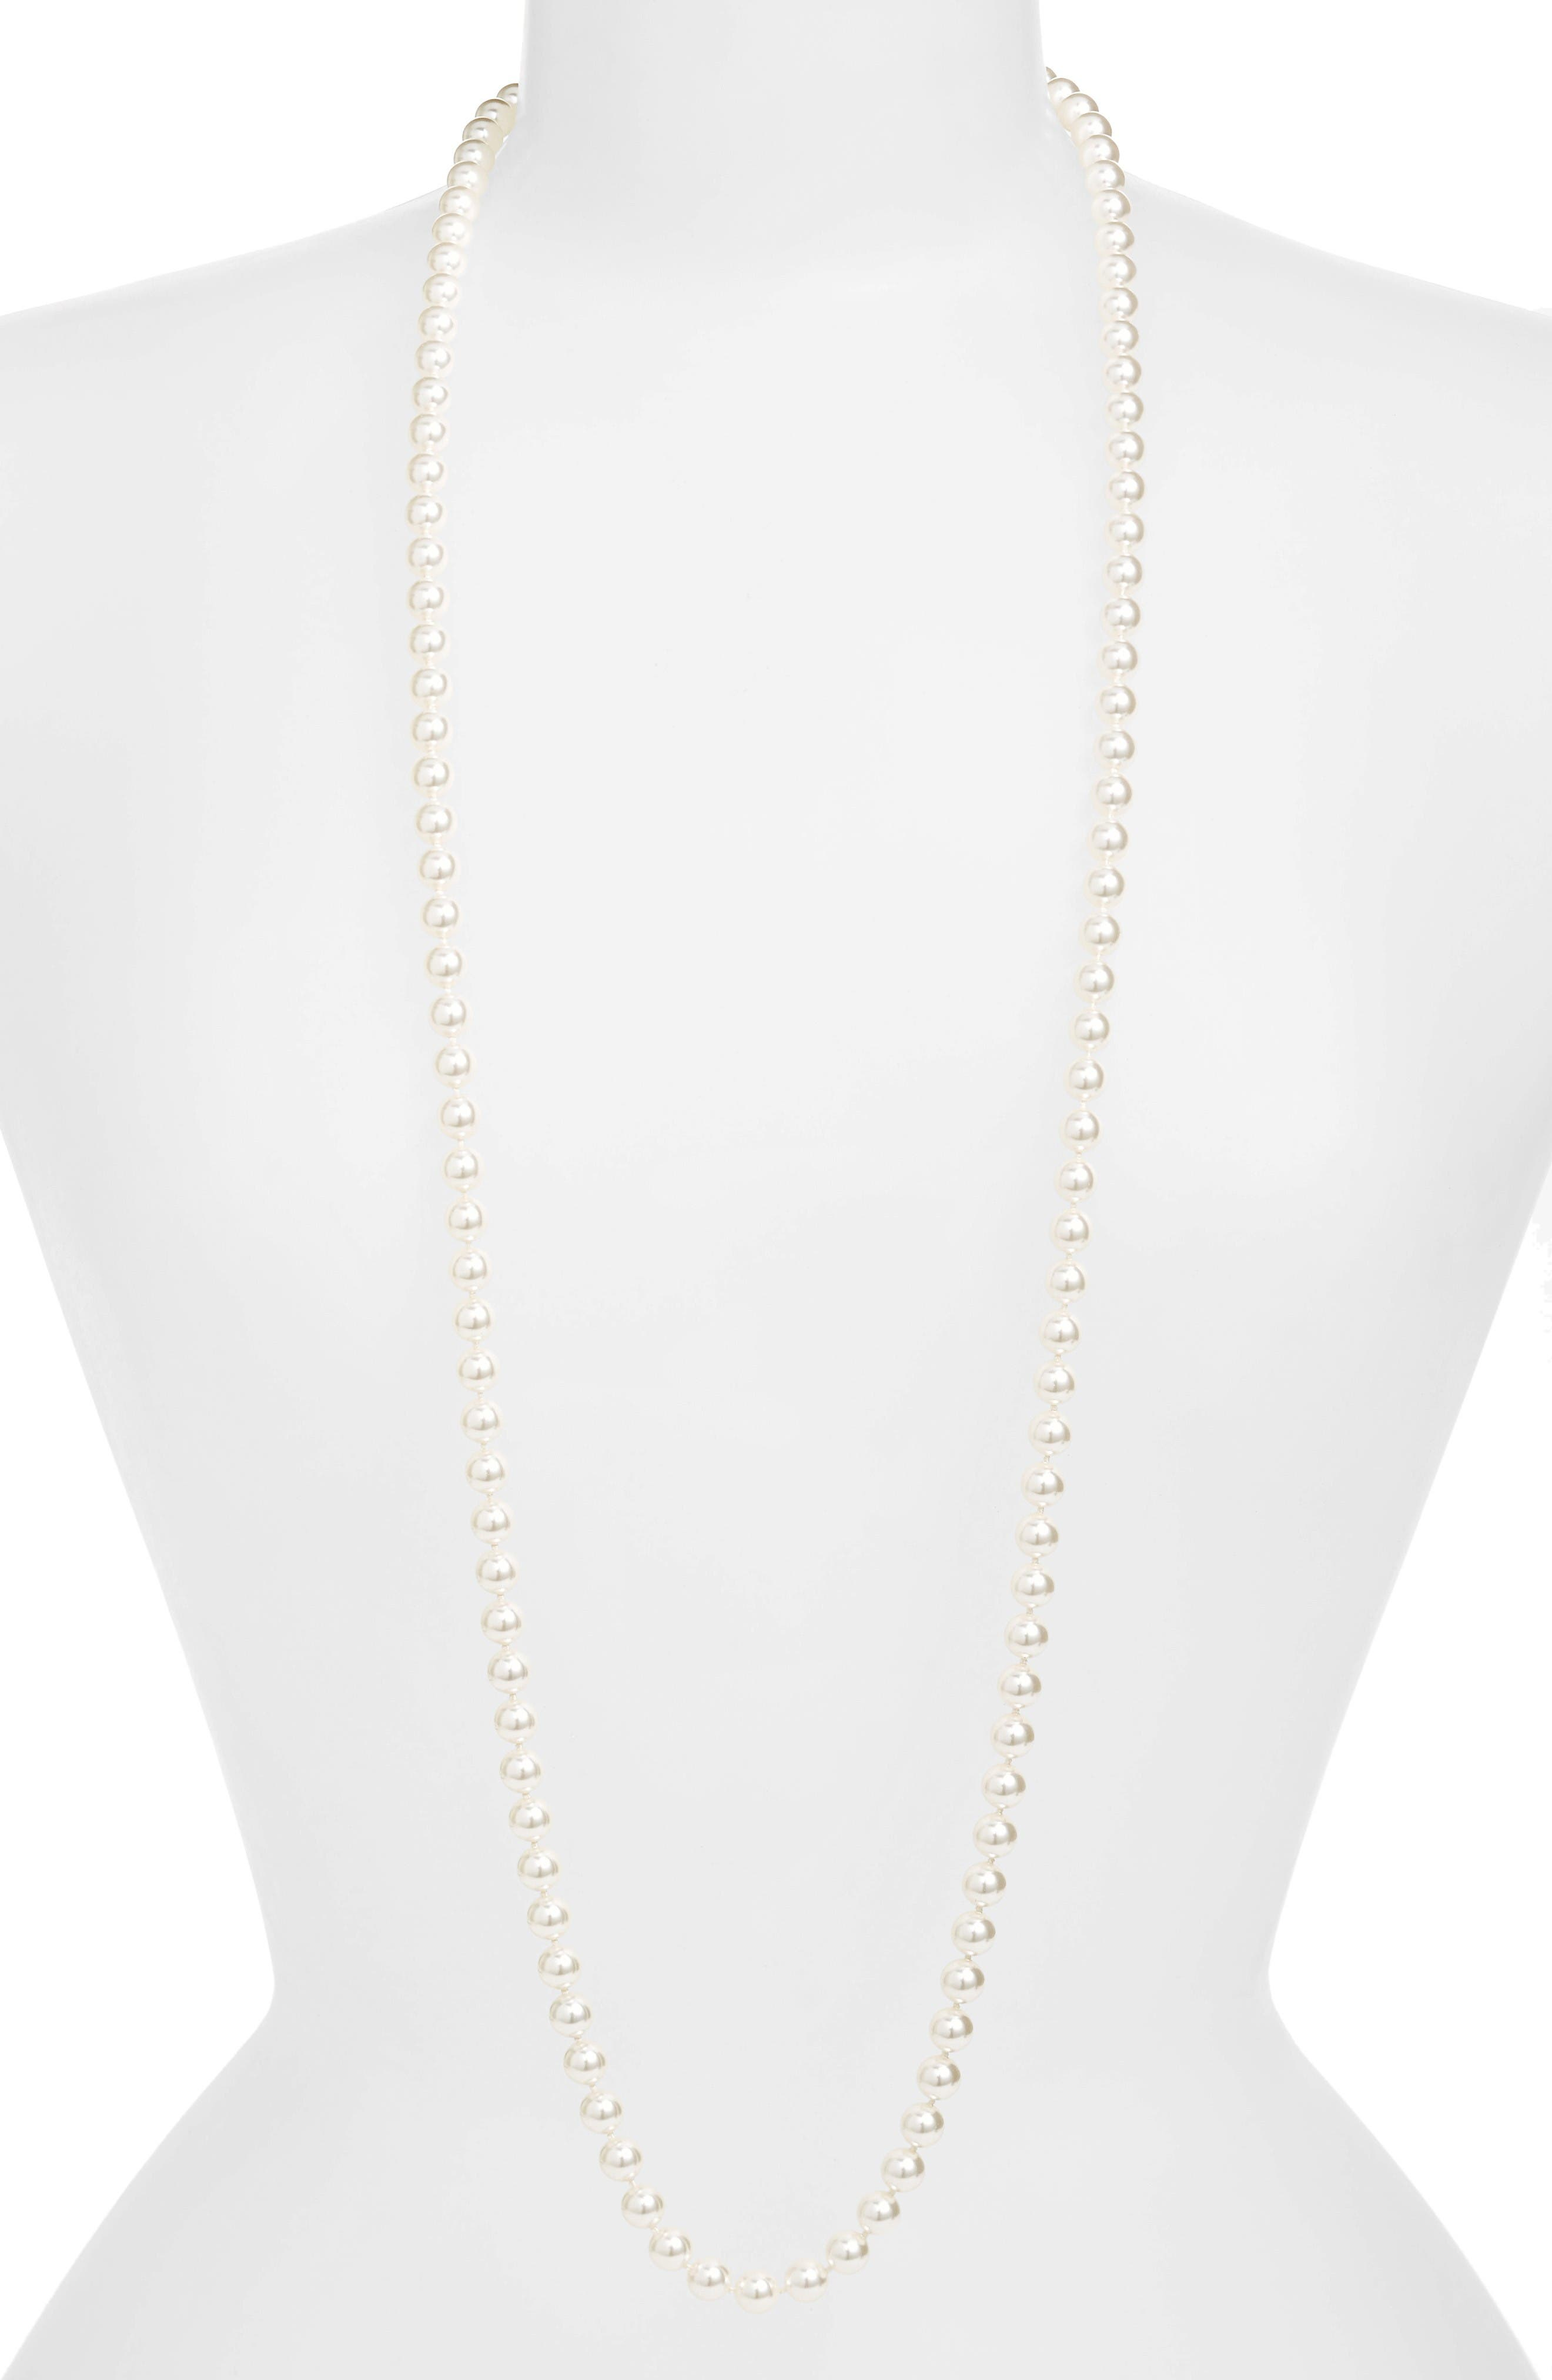 Nadri 42-Inch Glass Pearl Strand Rope Necklace